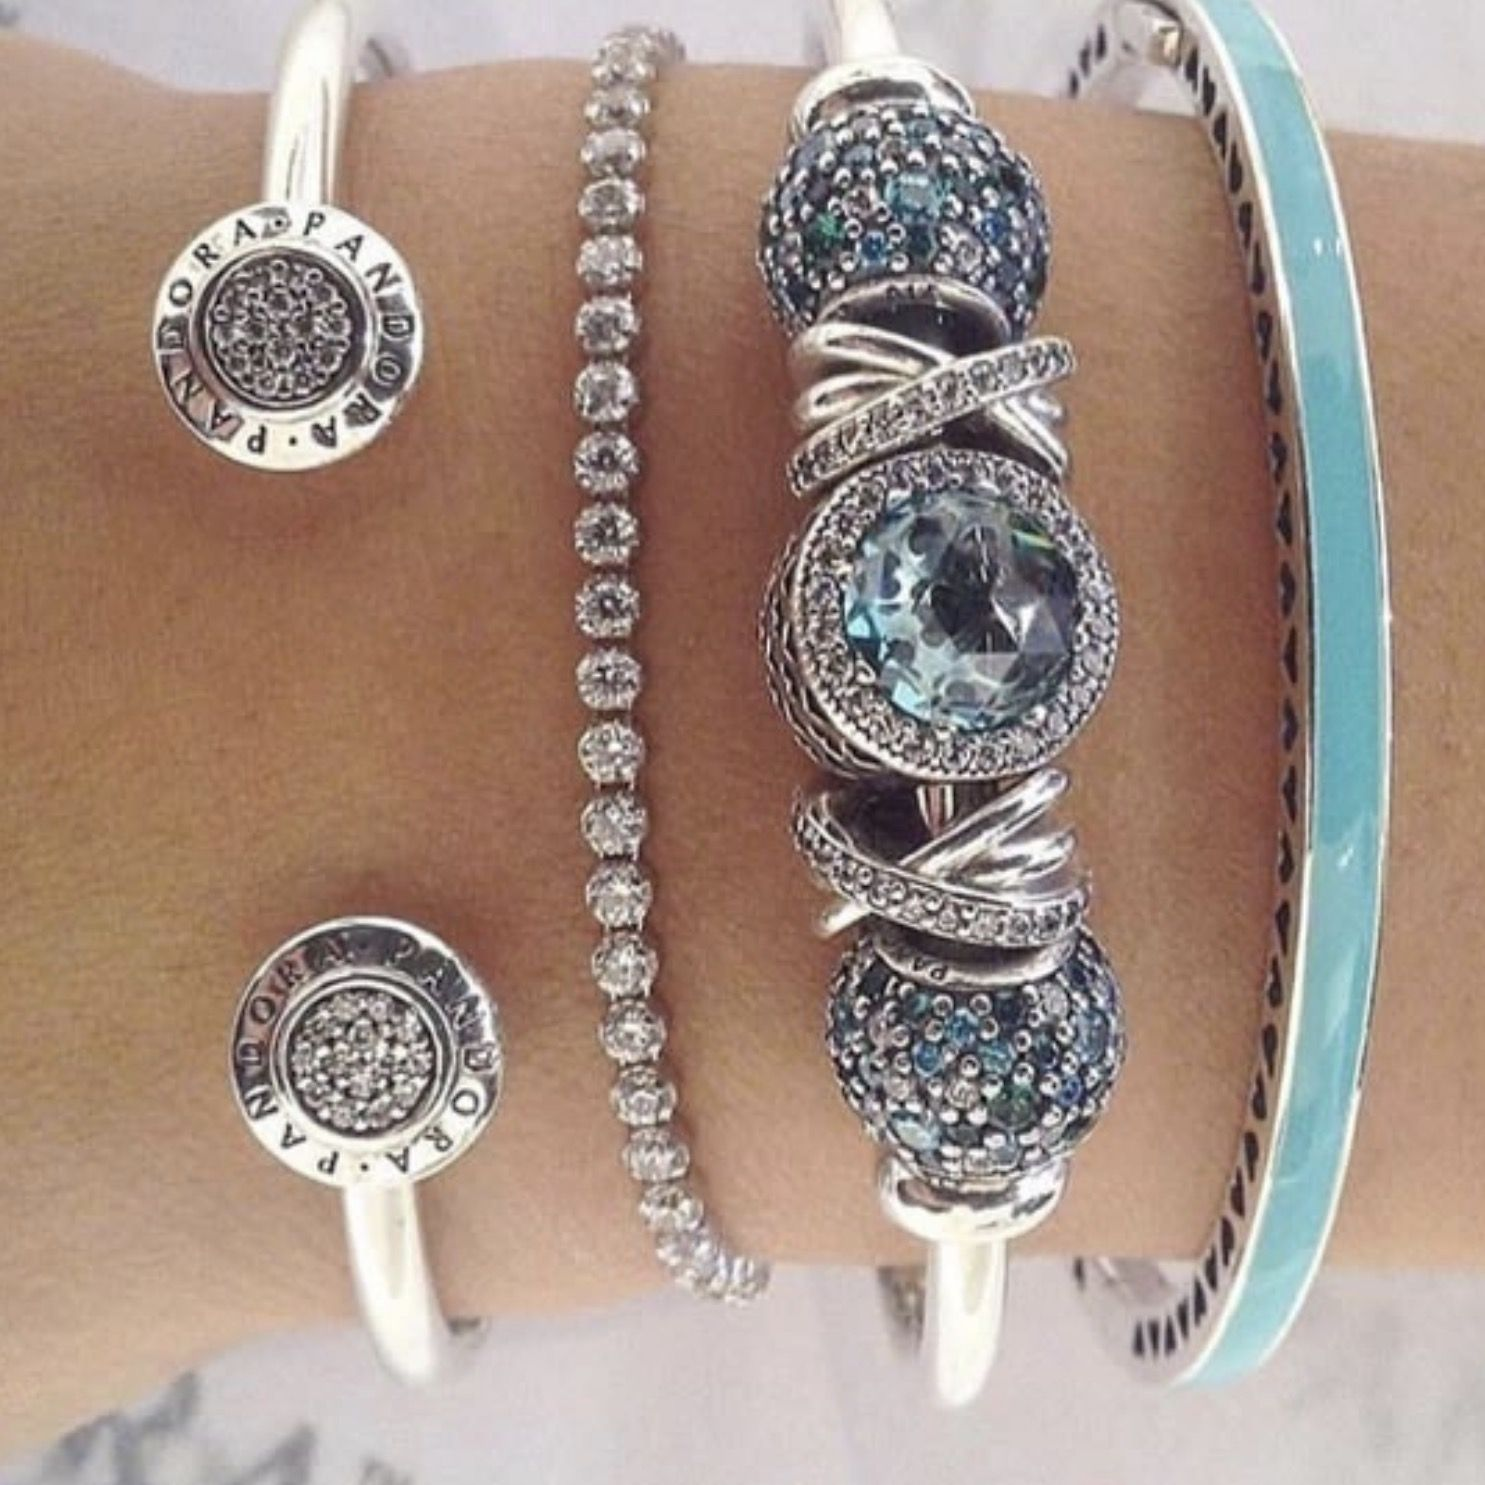 bracelet an mess pandora blog charm bangles the with organised counterfeit bangle one charms